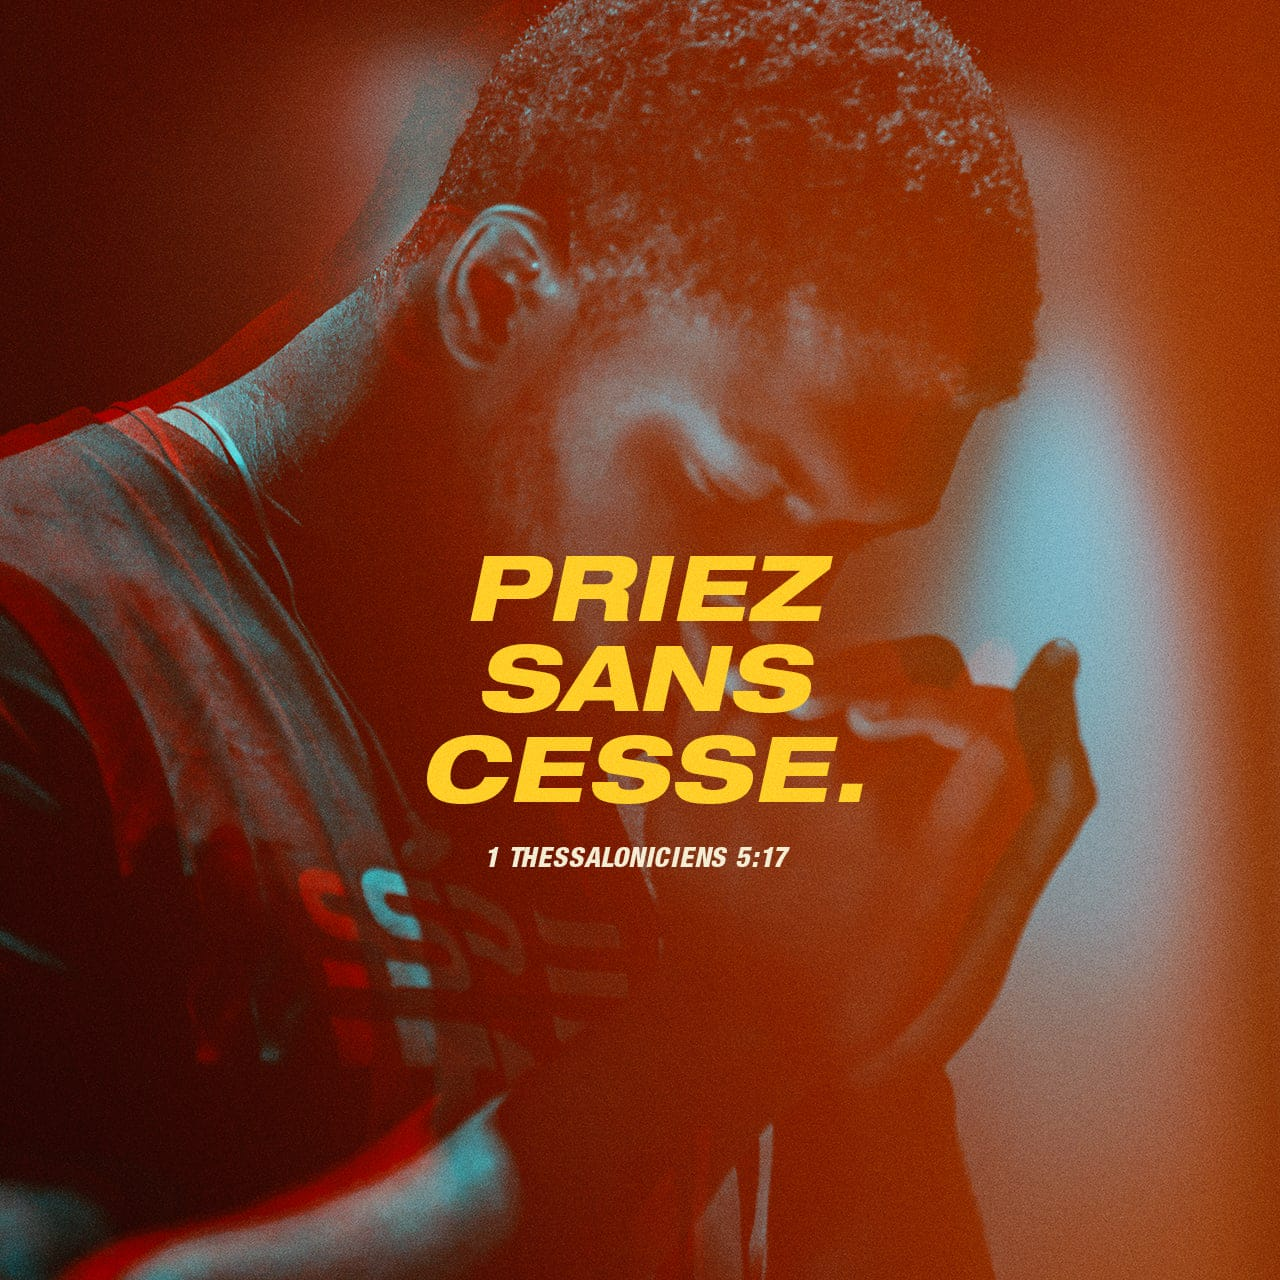 Verset Illustré pour 1 Thessaloniciens 5:17